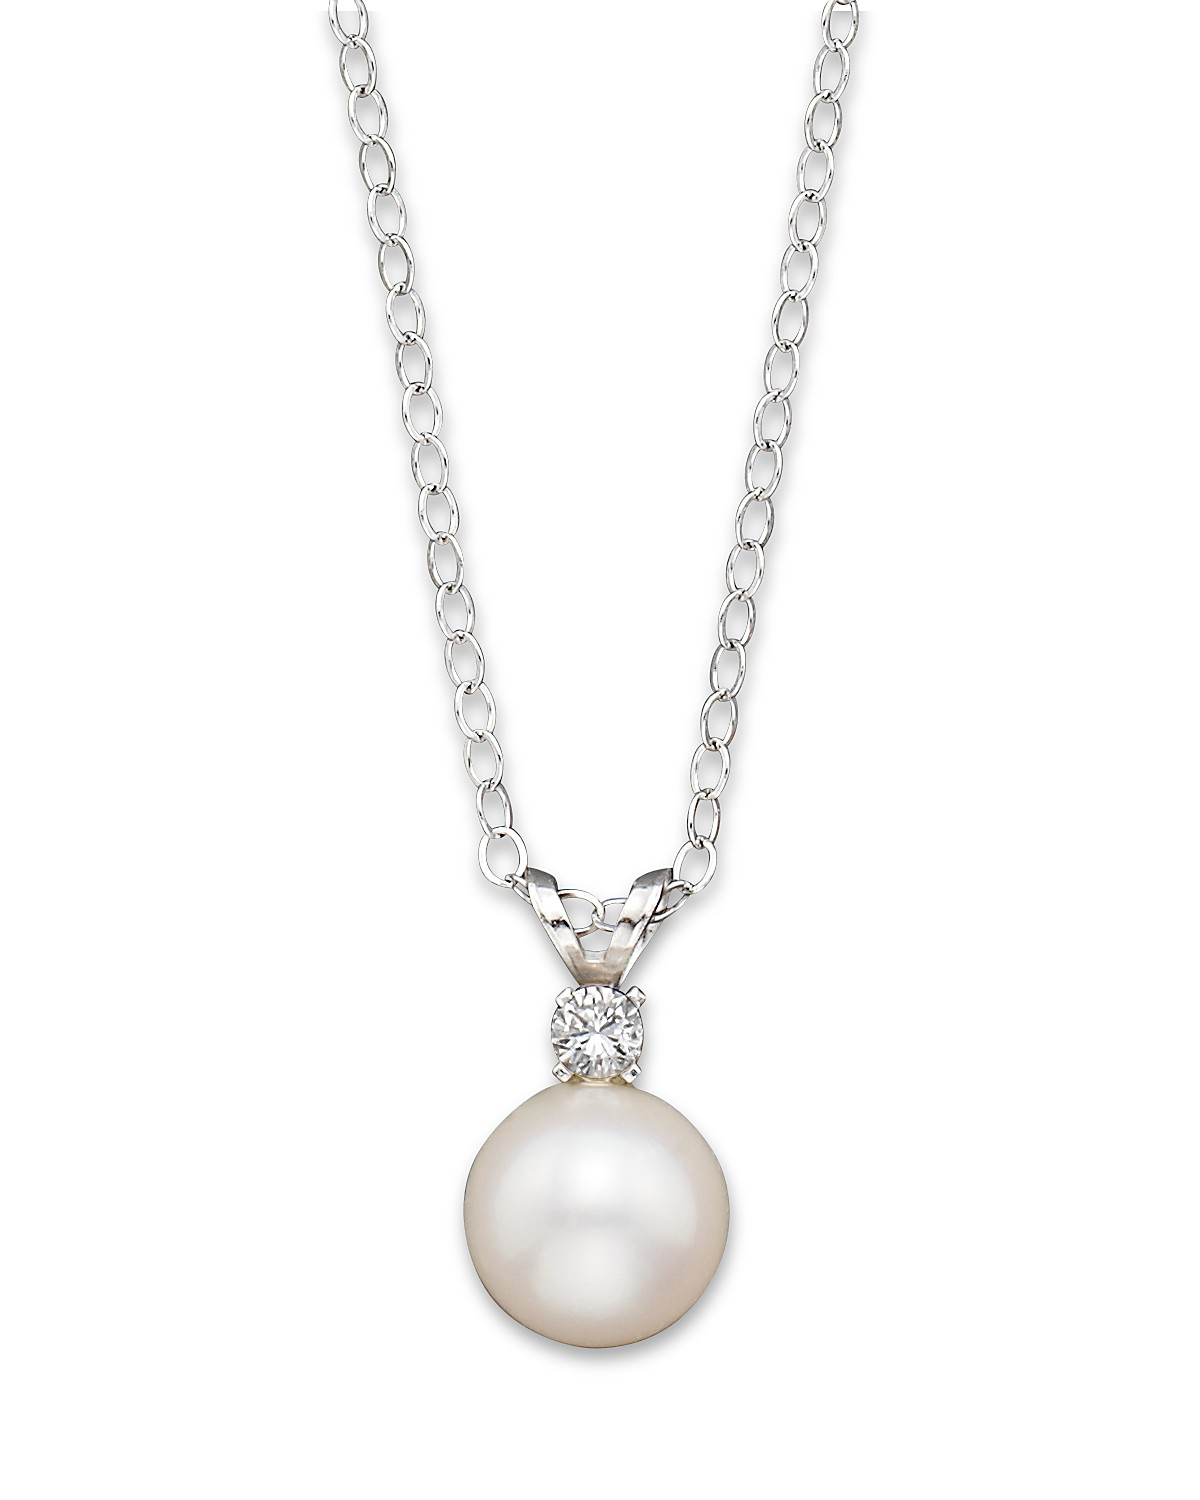 bergsoe josephine fishing gold gone diamond bergs and e pendant pearl products